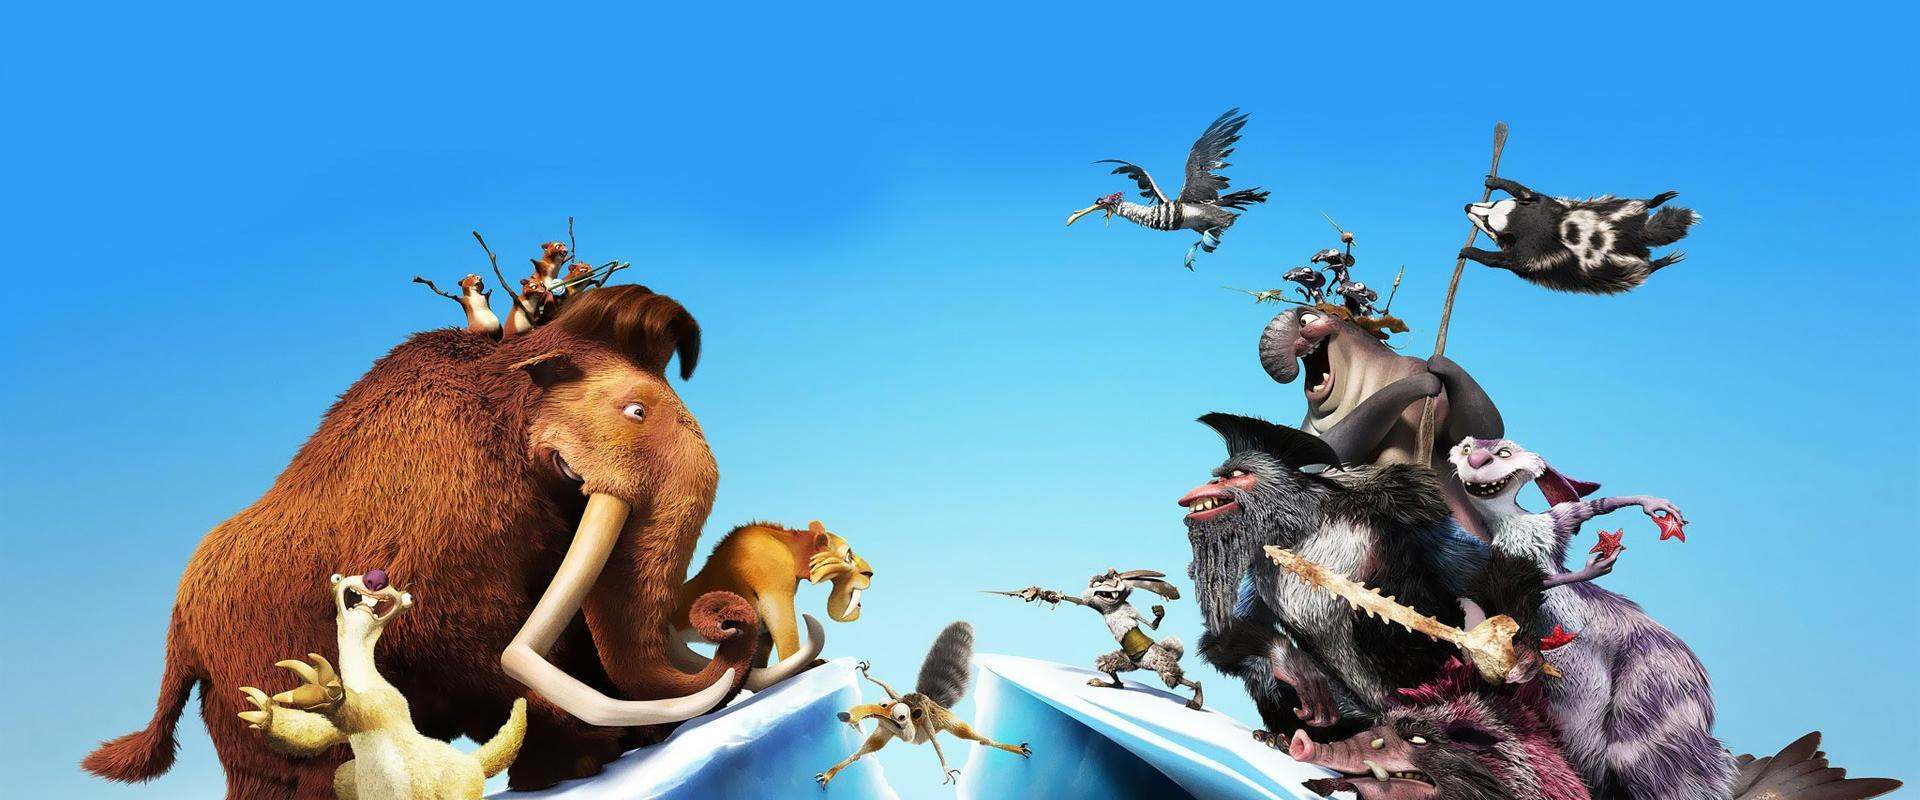 Ice Age: Continental Drift background 2